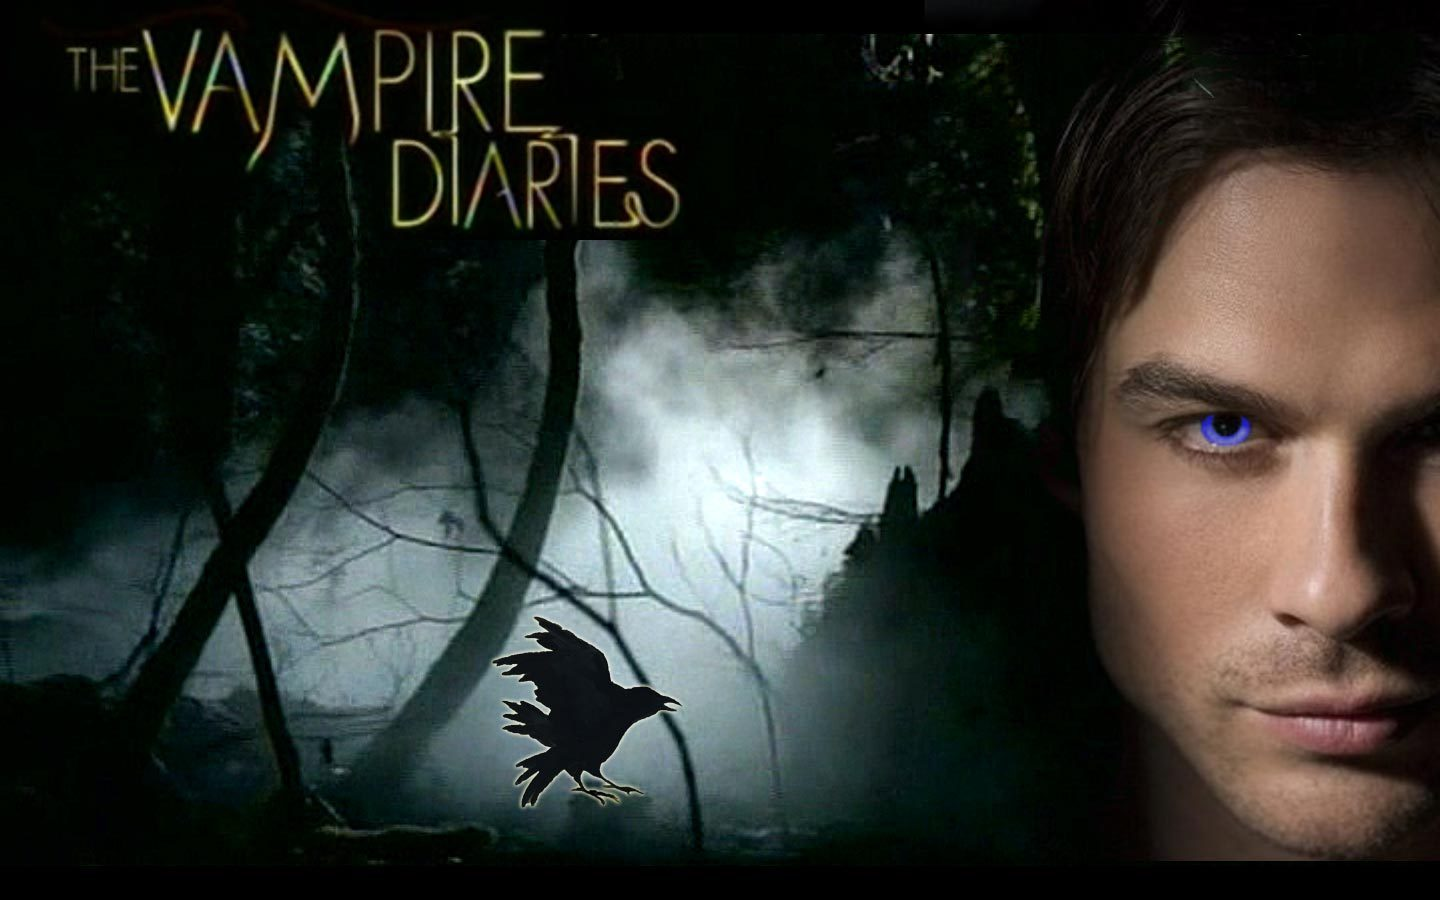 The Vampire Diaries Vampires Wallpaper 18605484 1440x900